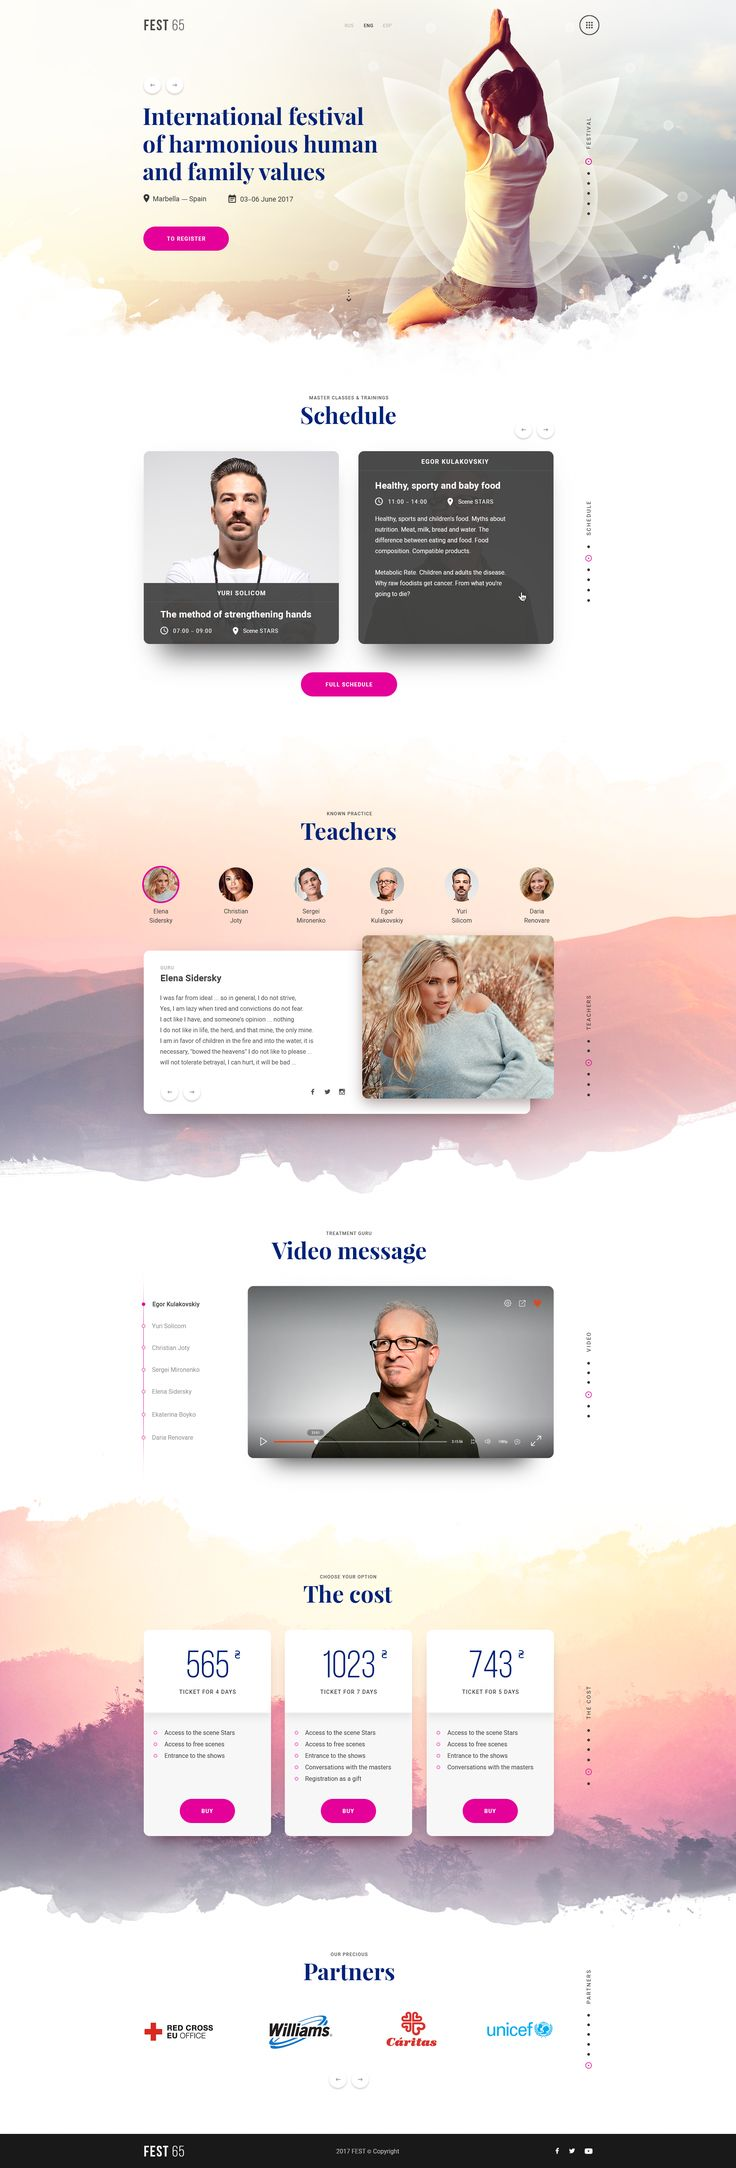 """What i like about this design is it looks like a really relaxing website. But what i don't like is that i wish some of the images where a bit bigger. So i would make the pictures a bit bigger for the teachers. Картинки с текстом. <a href=""""http://soulexpert.ru"""">Эксперт души</a>"""